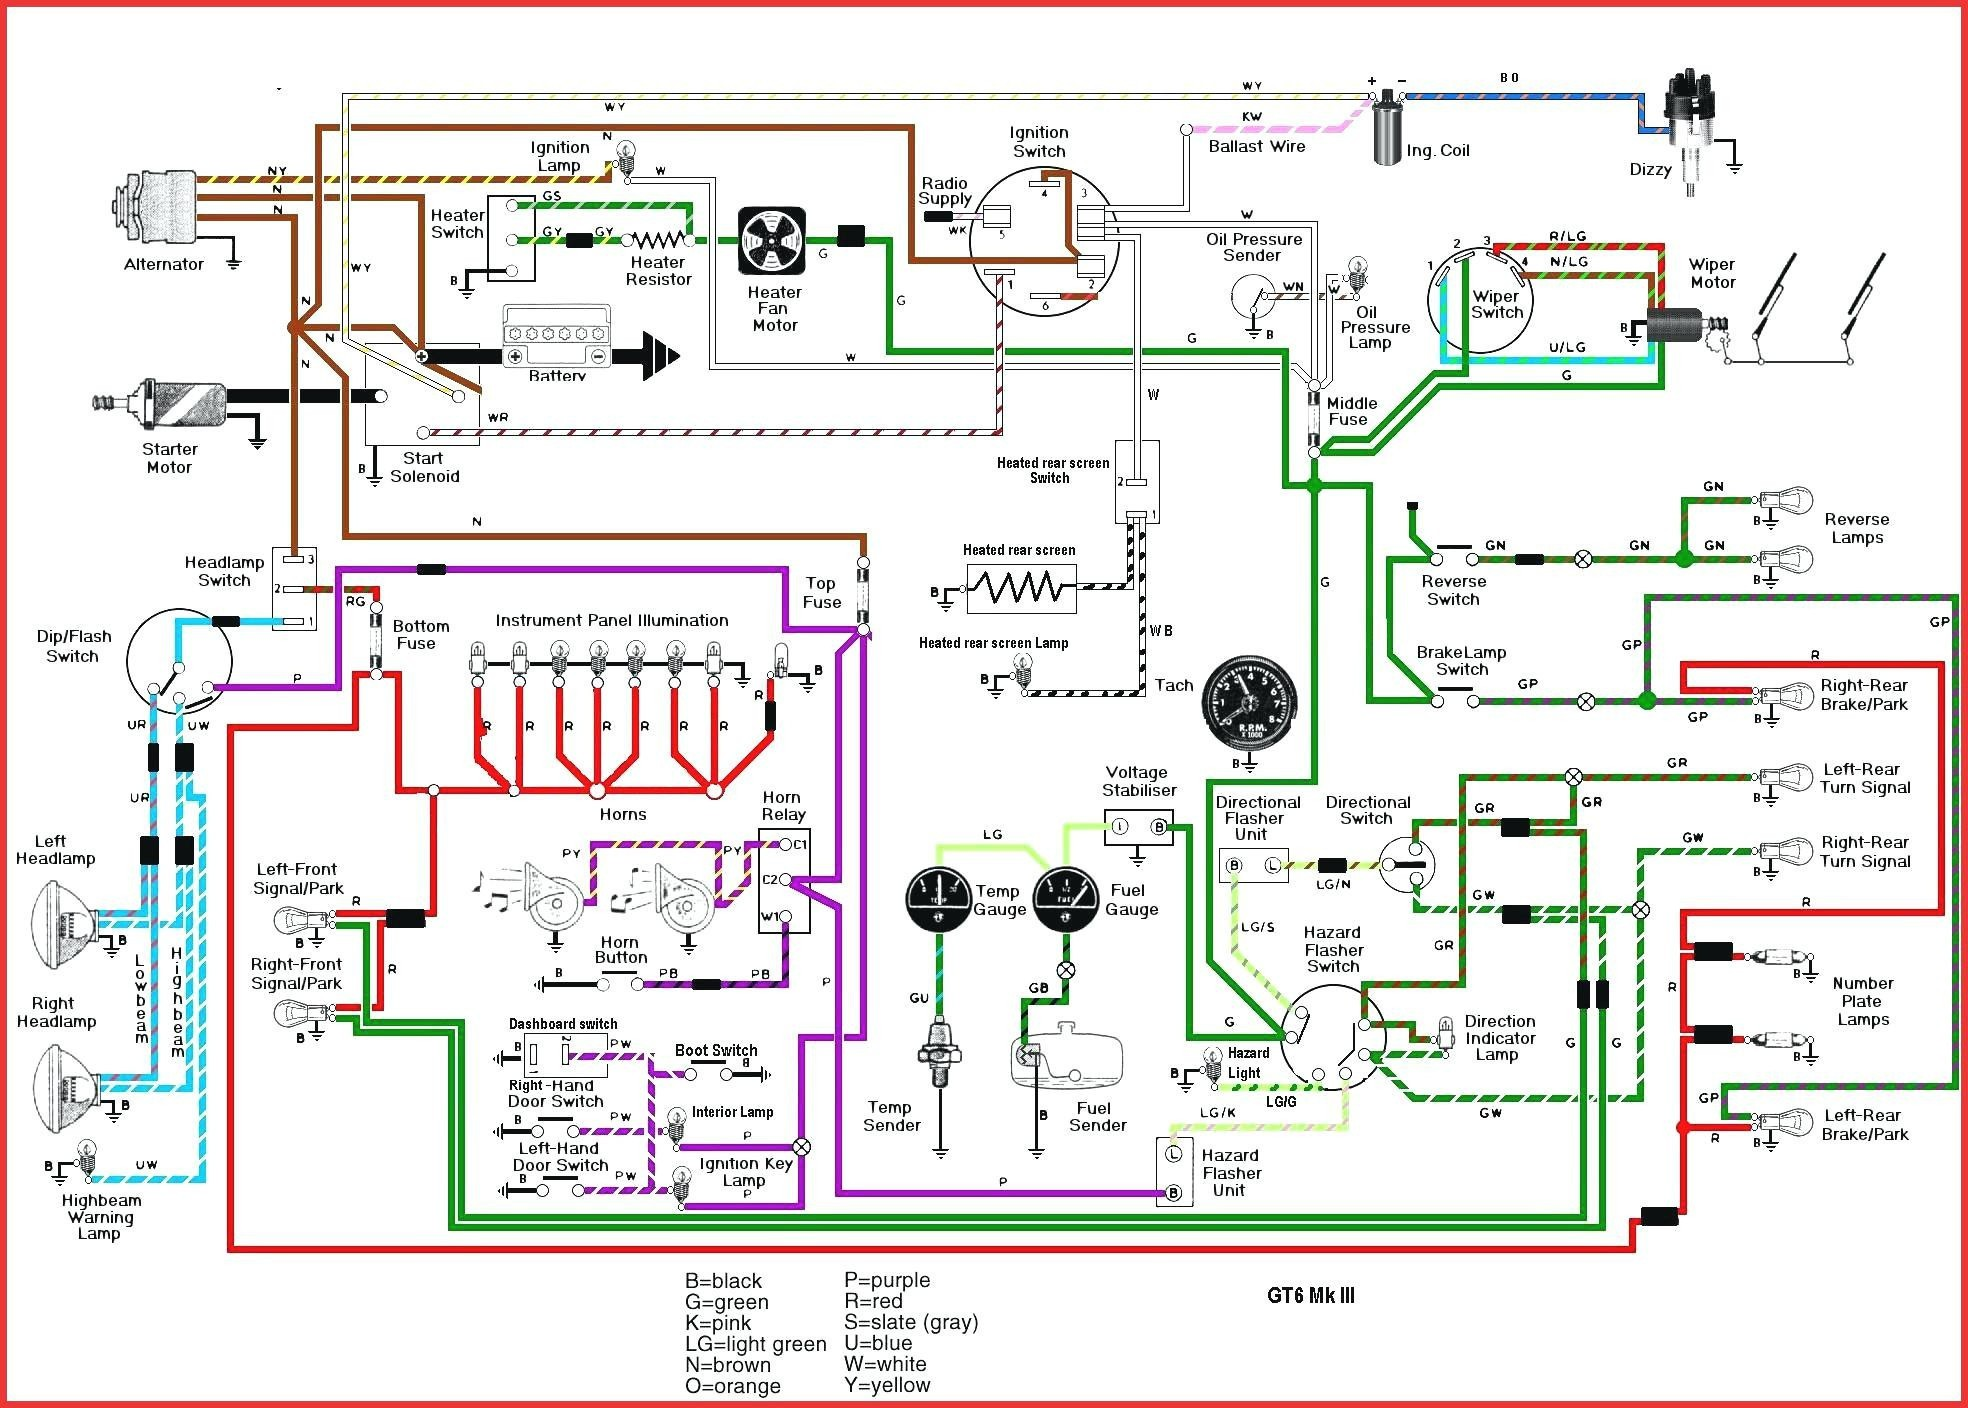 wiring diagrams online online car wiring diagrams wiring diagram data wiring diagram online arduino online car wiring diagrams wiring